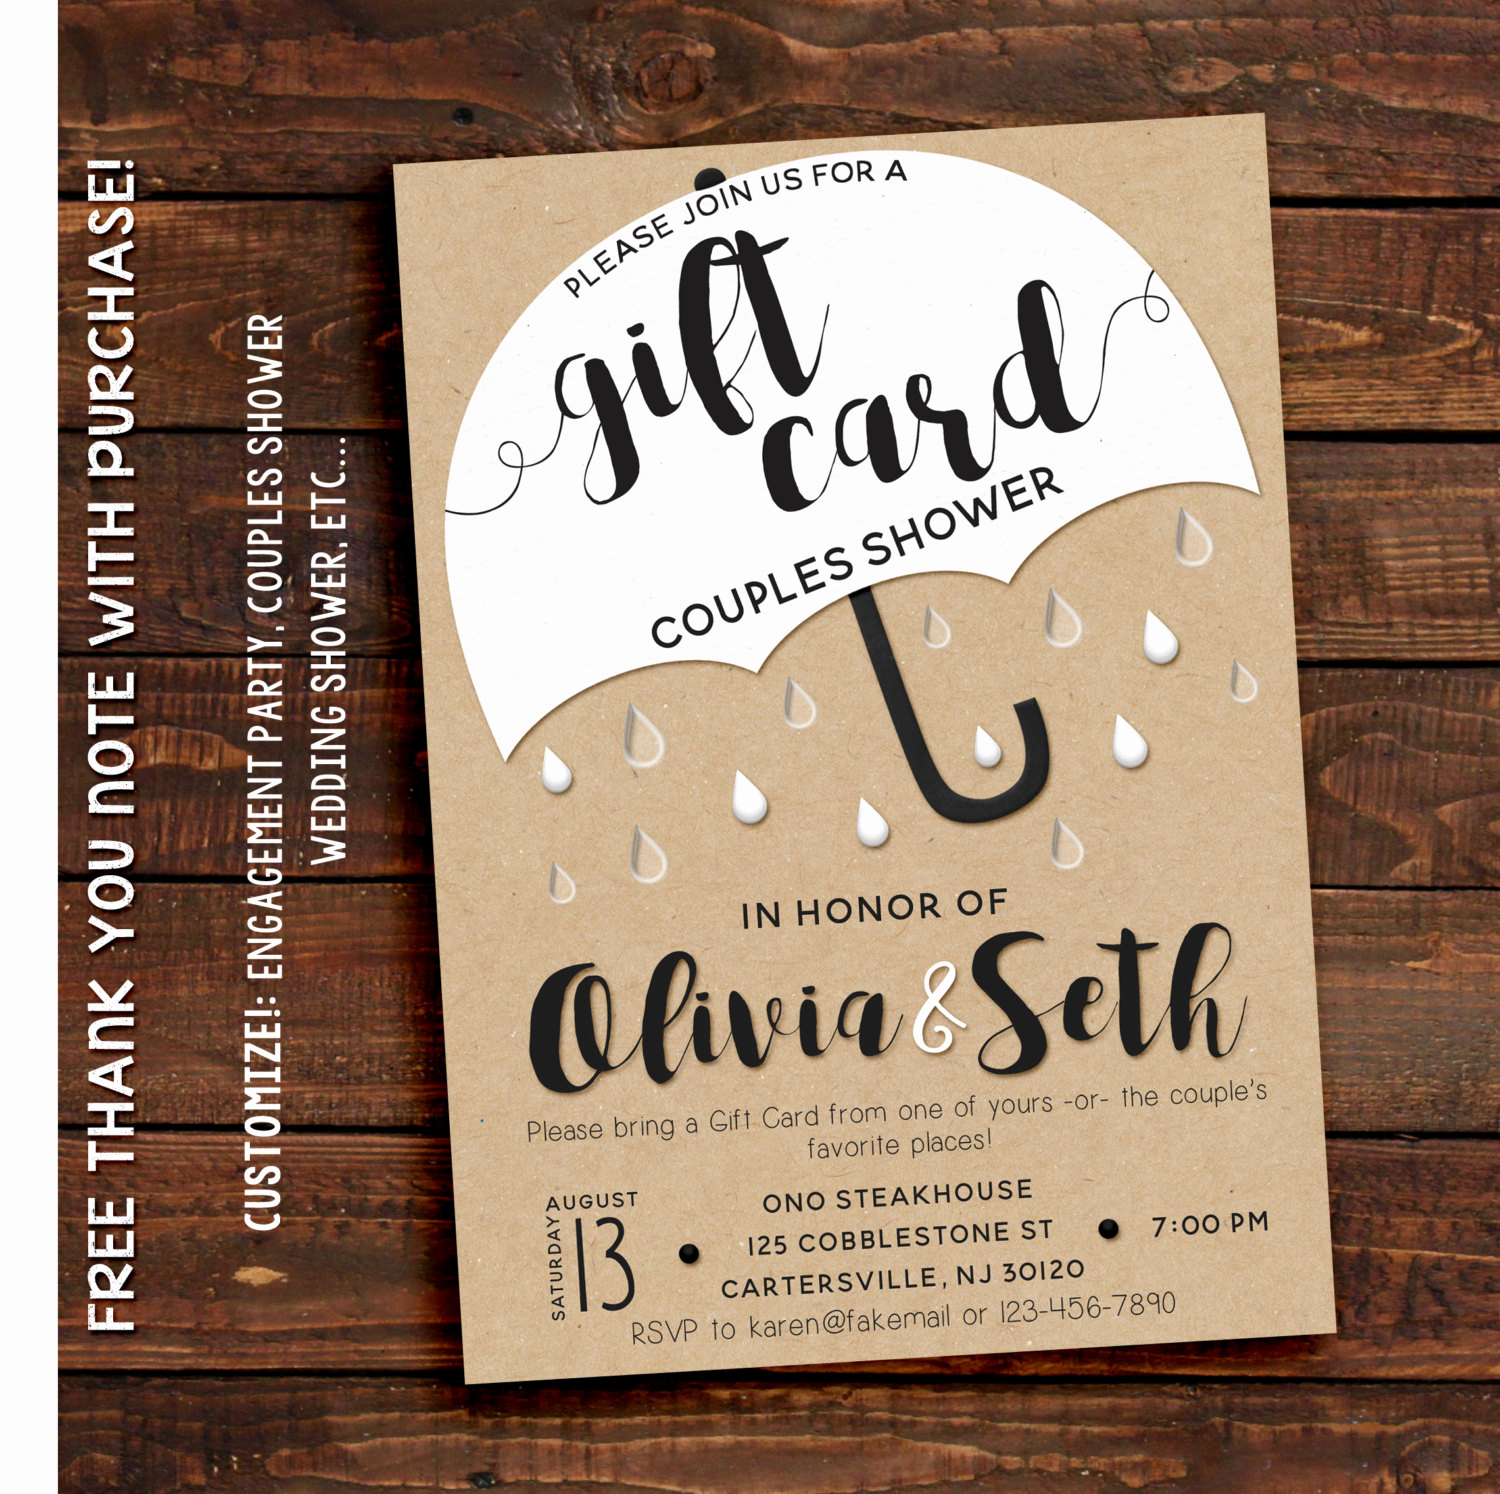 Card Shower Invitation Wording Elegant Couples Shower Invitation Couples Shower Invitation